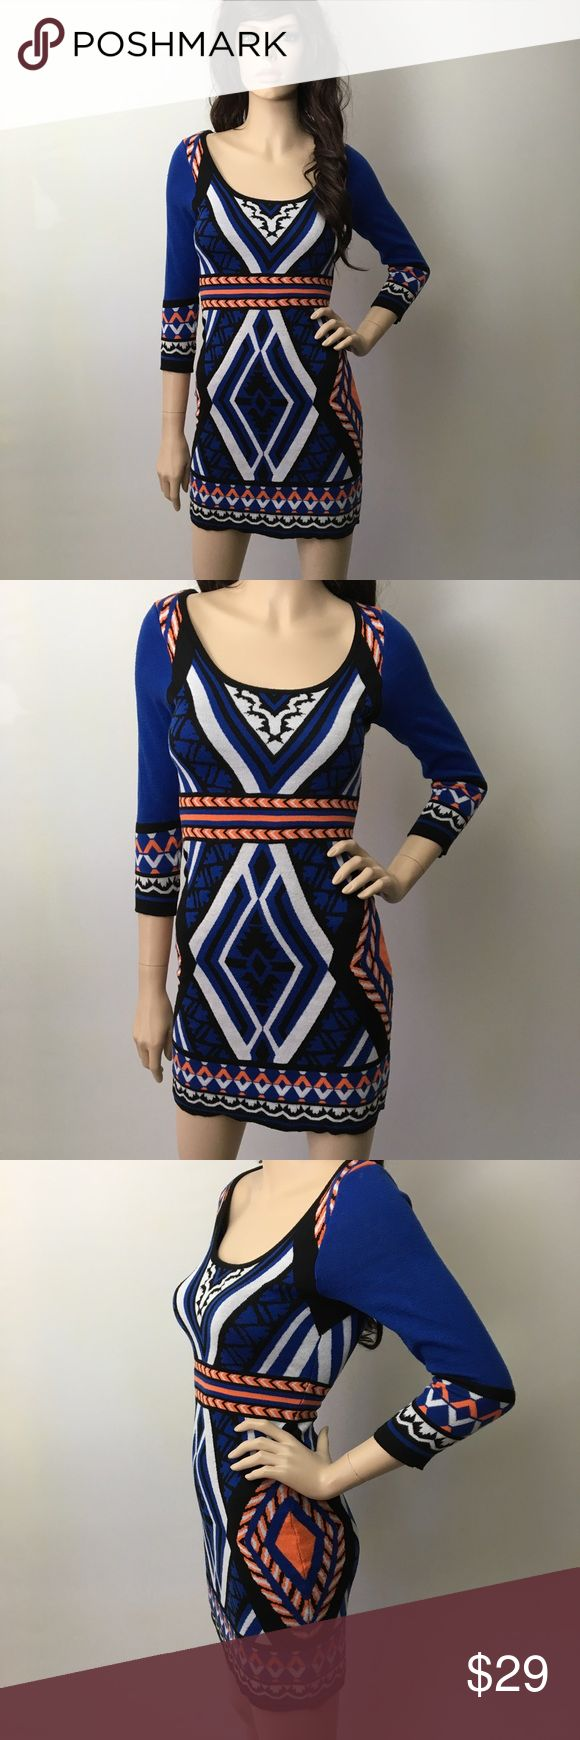 Bohemian Aztec Bodycon Sweater Dress   This is gorgeous! Soft tight knit polyester. Firm fitting body con style. Great condition.  Flying Tomato Dresses